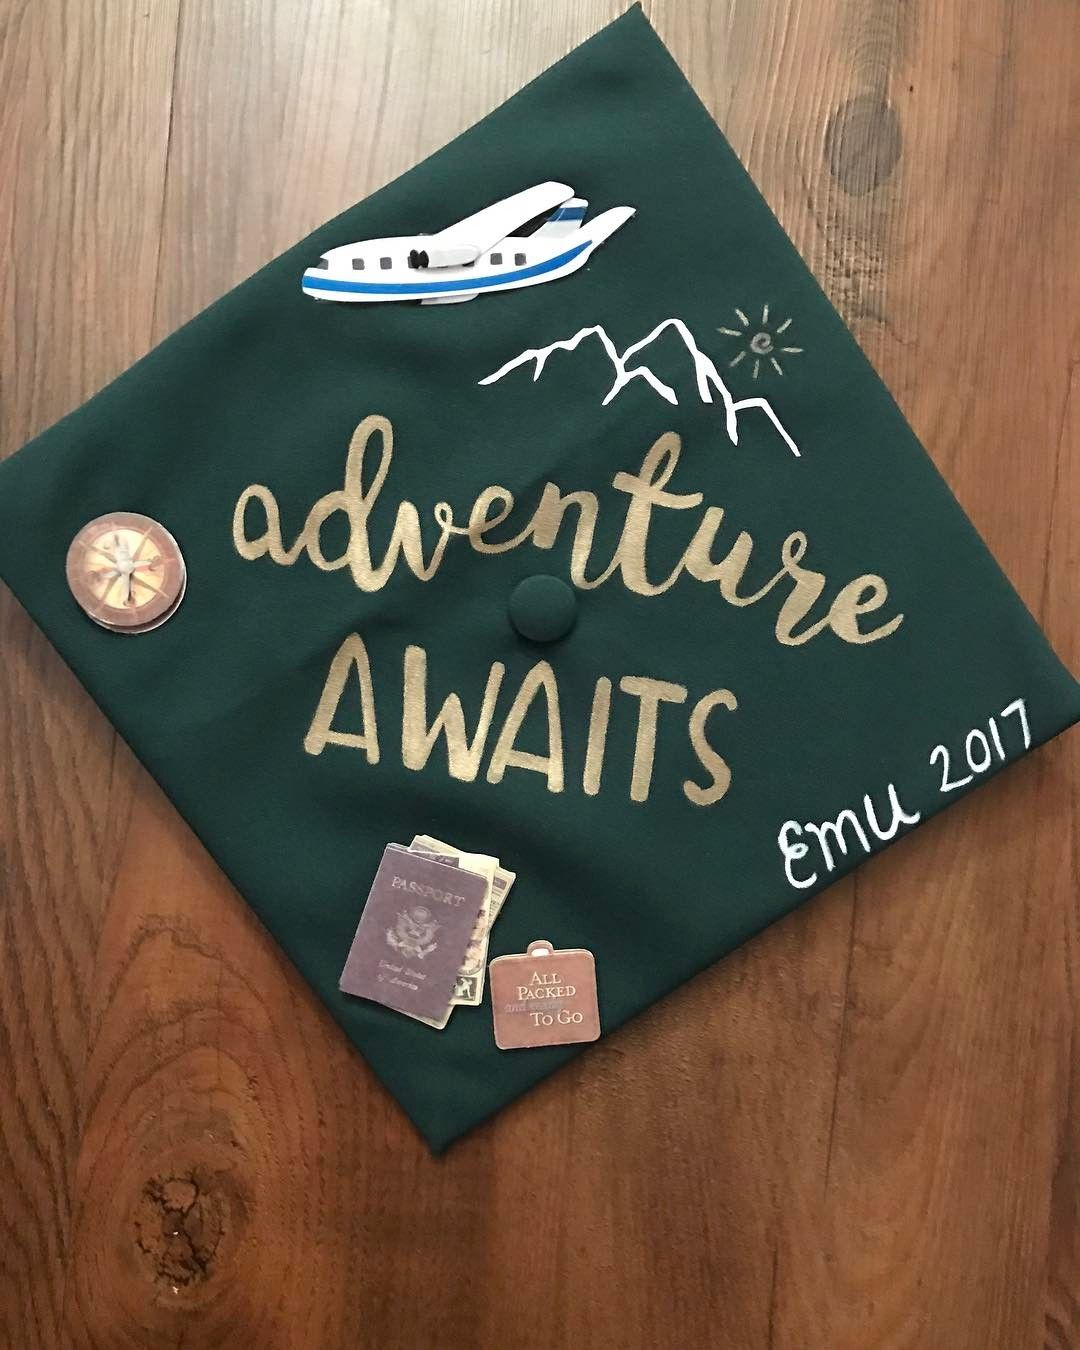 28 graduation cap ideas for students with serious wanderlust | diy